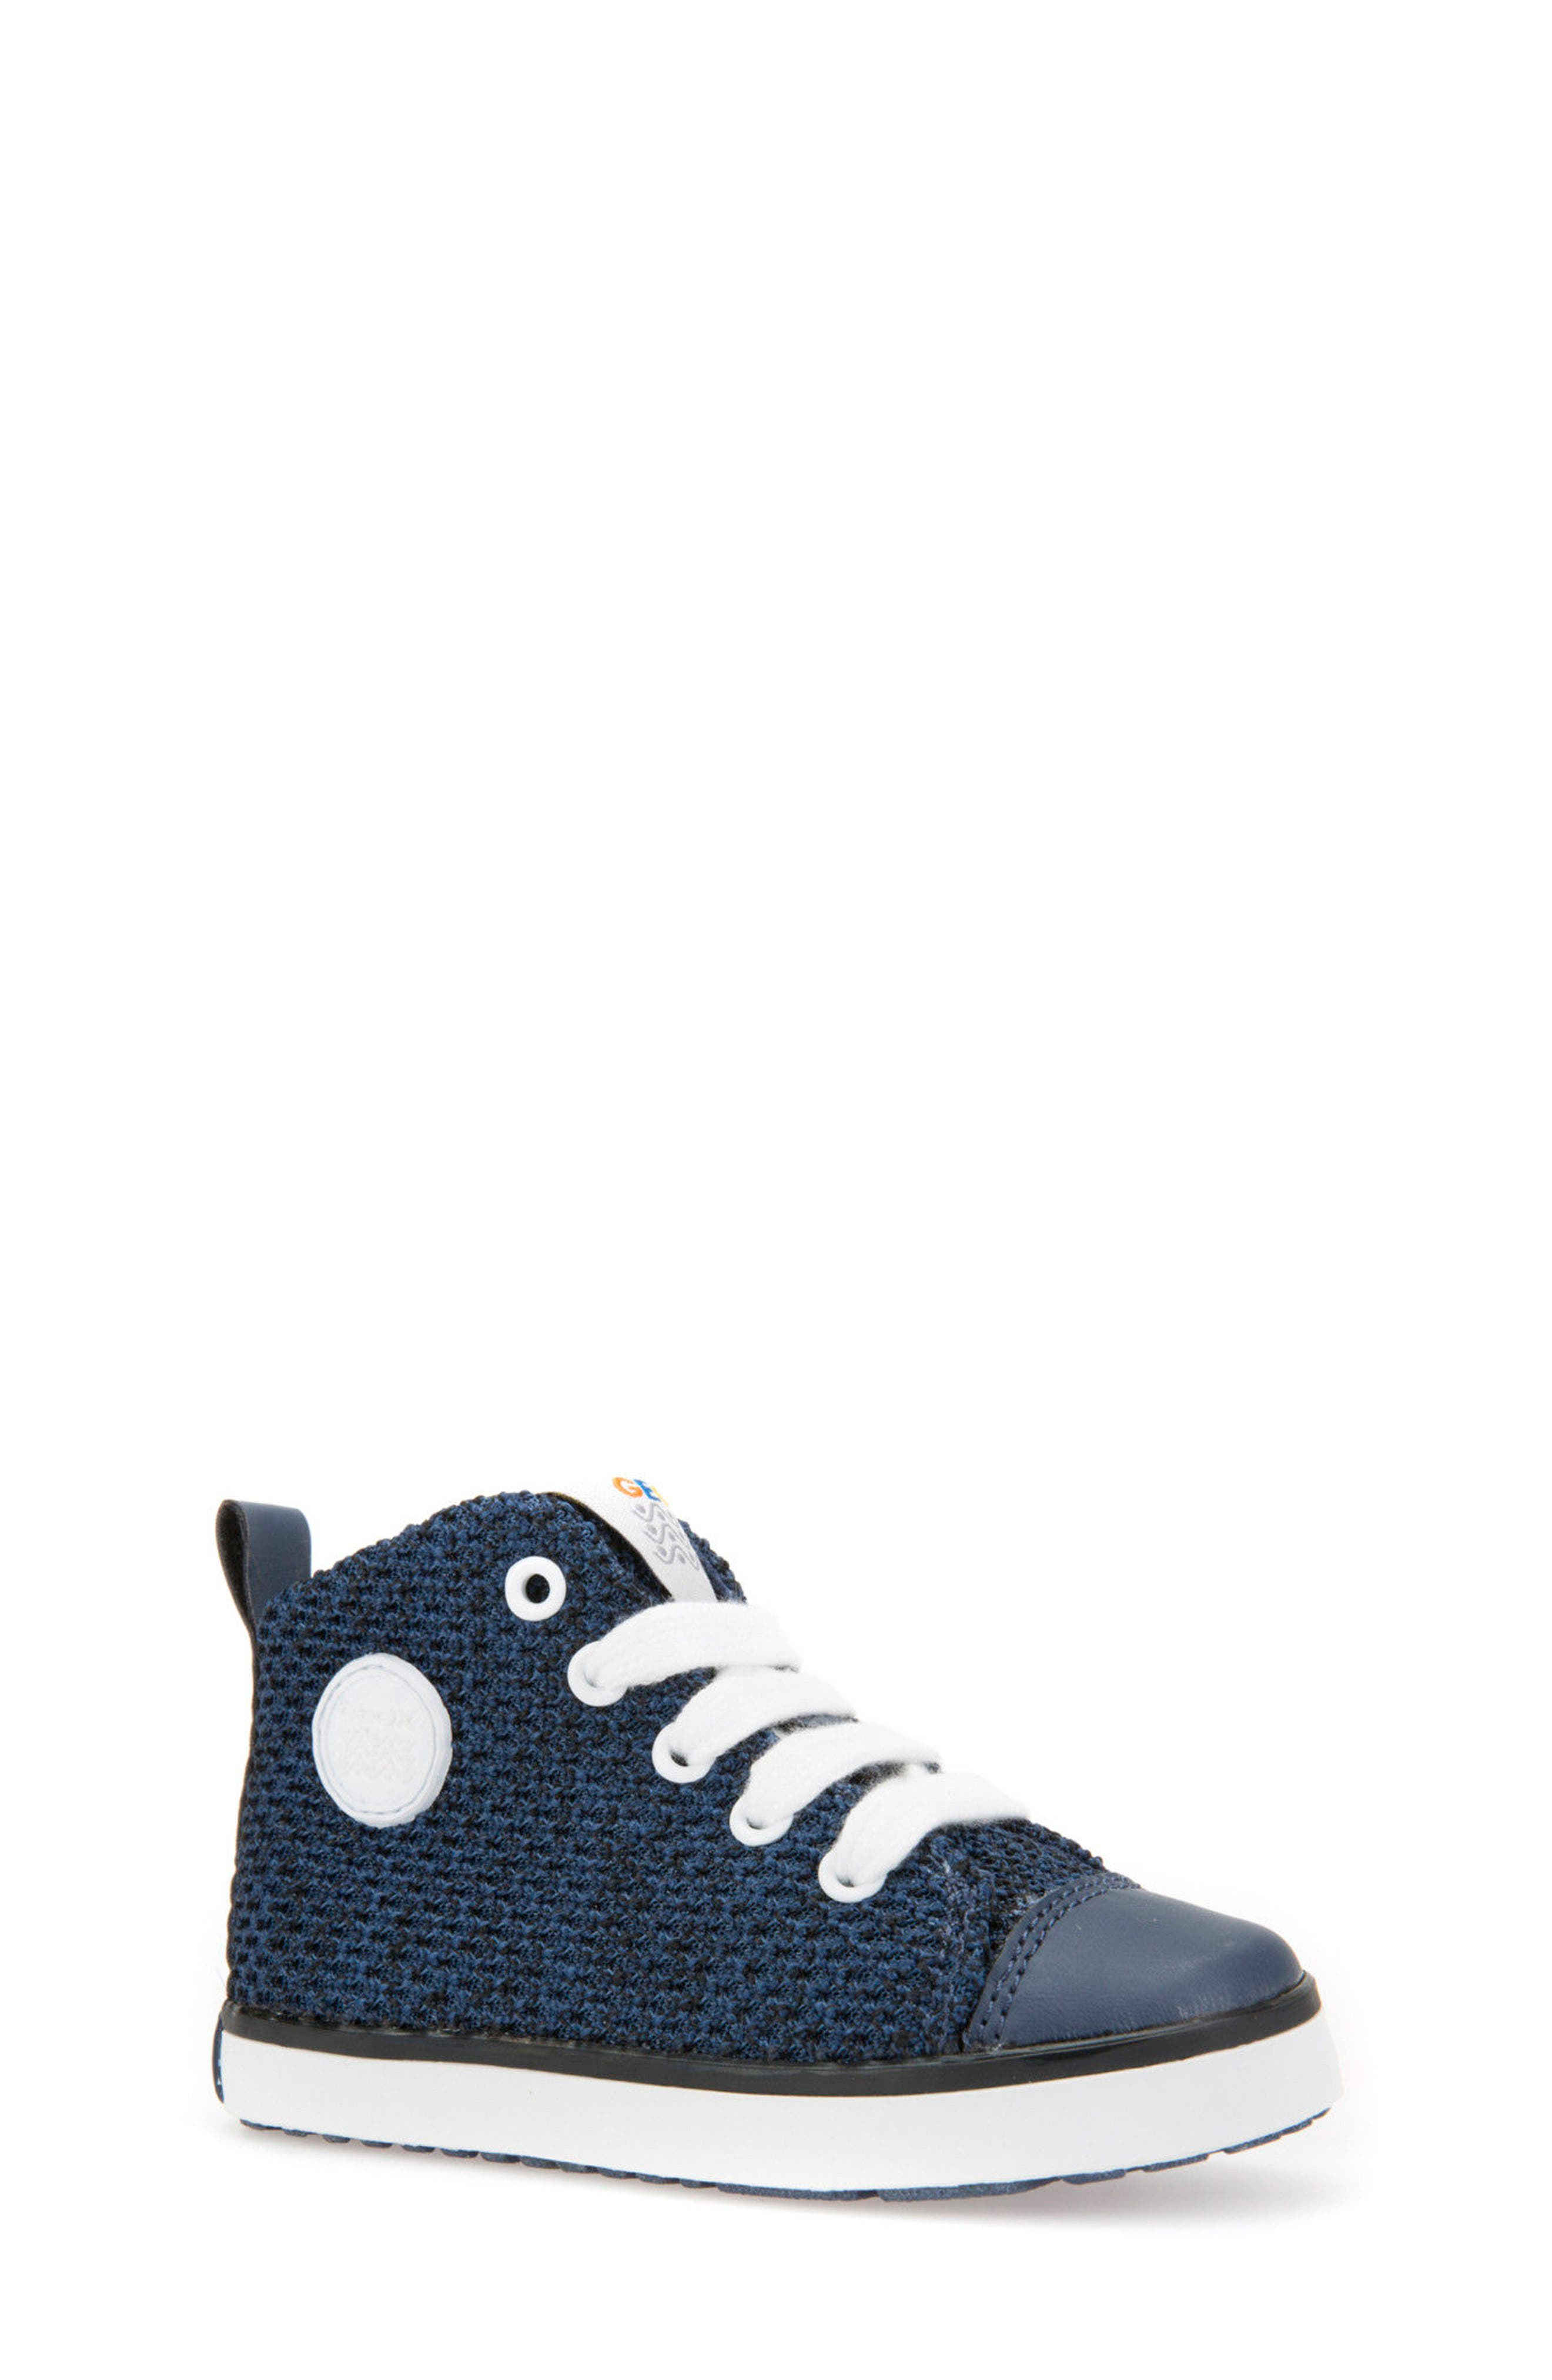 Kilwi Knit High Top Sneaker,                             Main thumbnail 1, color,                             Navy